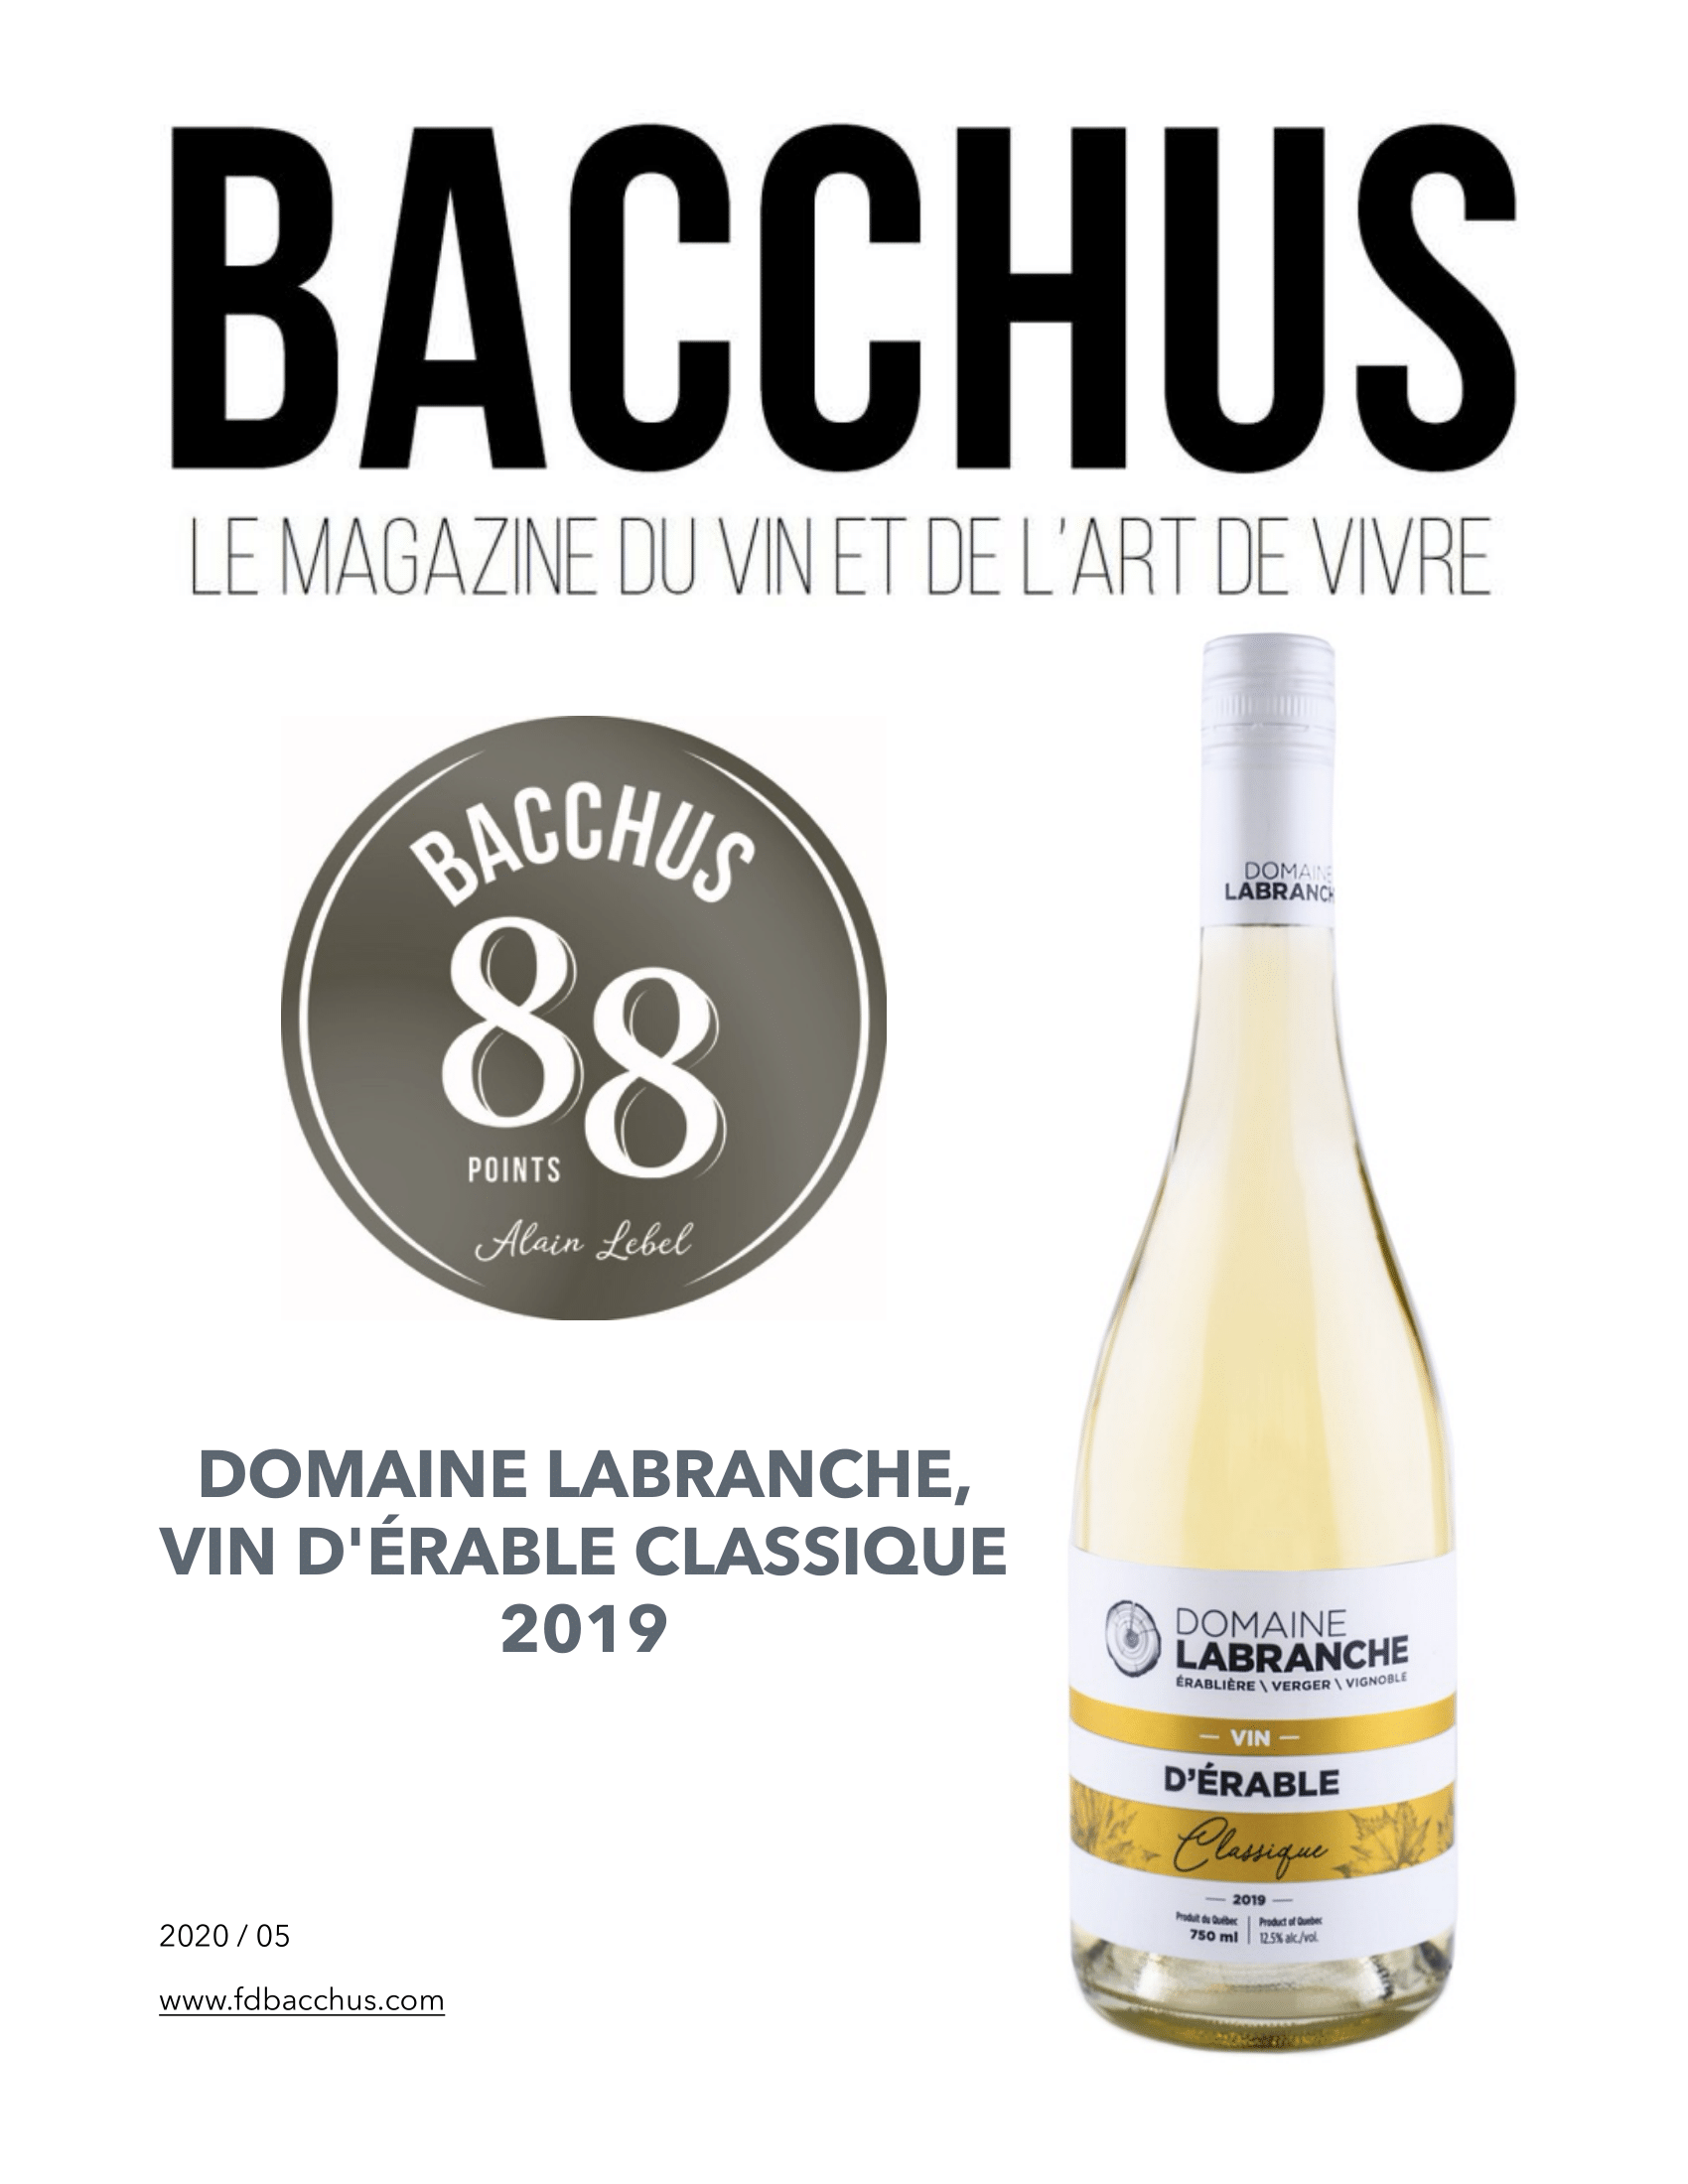 AfficheDomLabrancheVinDerable 1 - Domaine Labranche